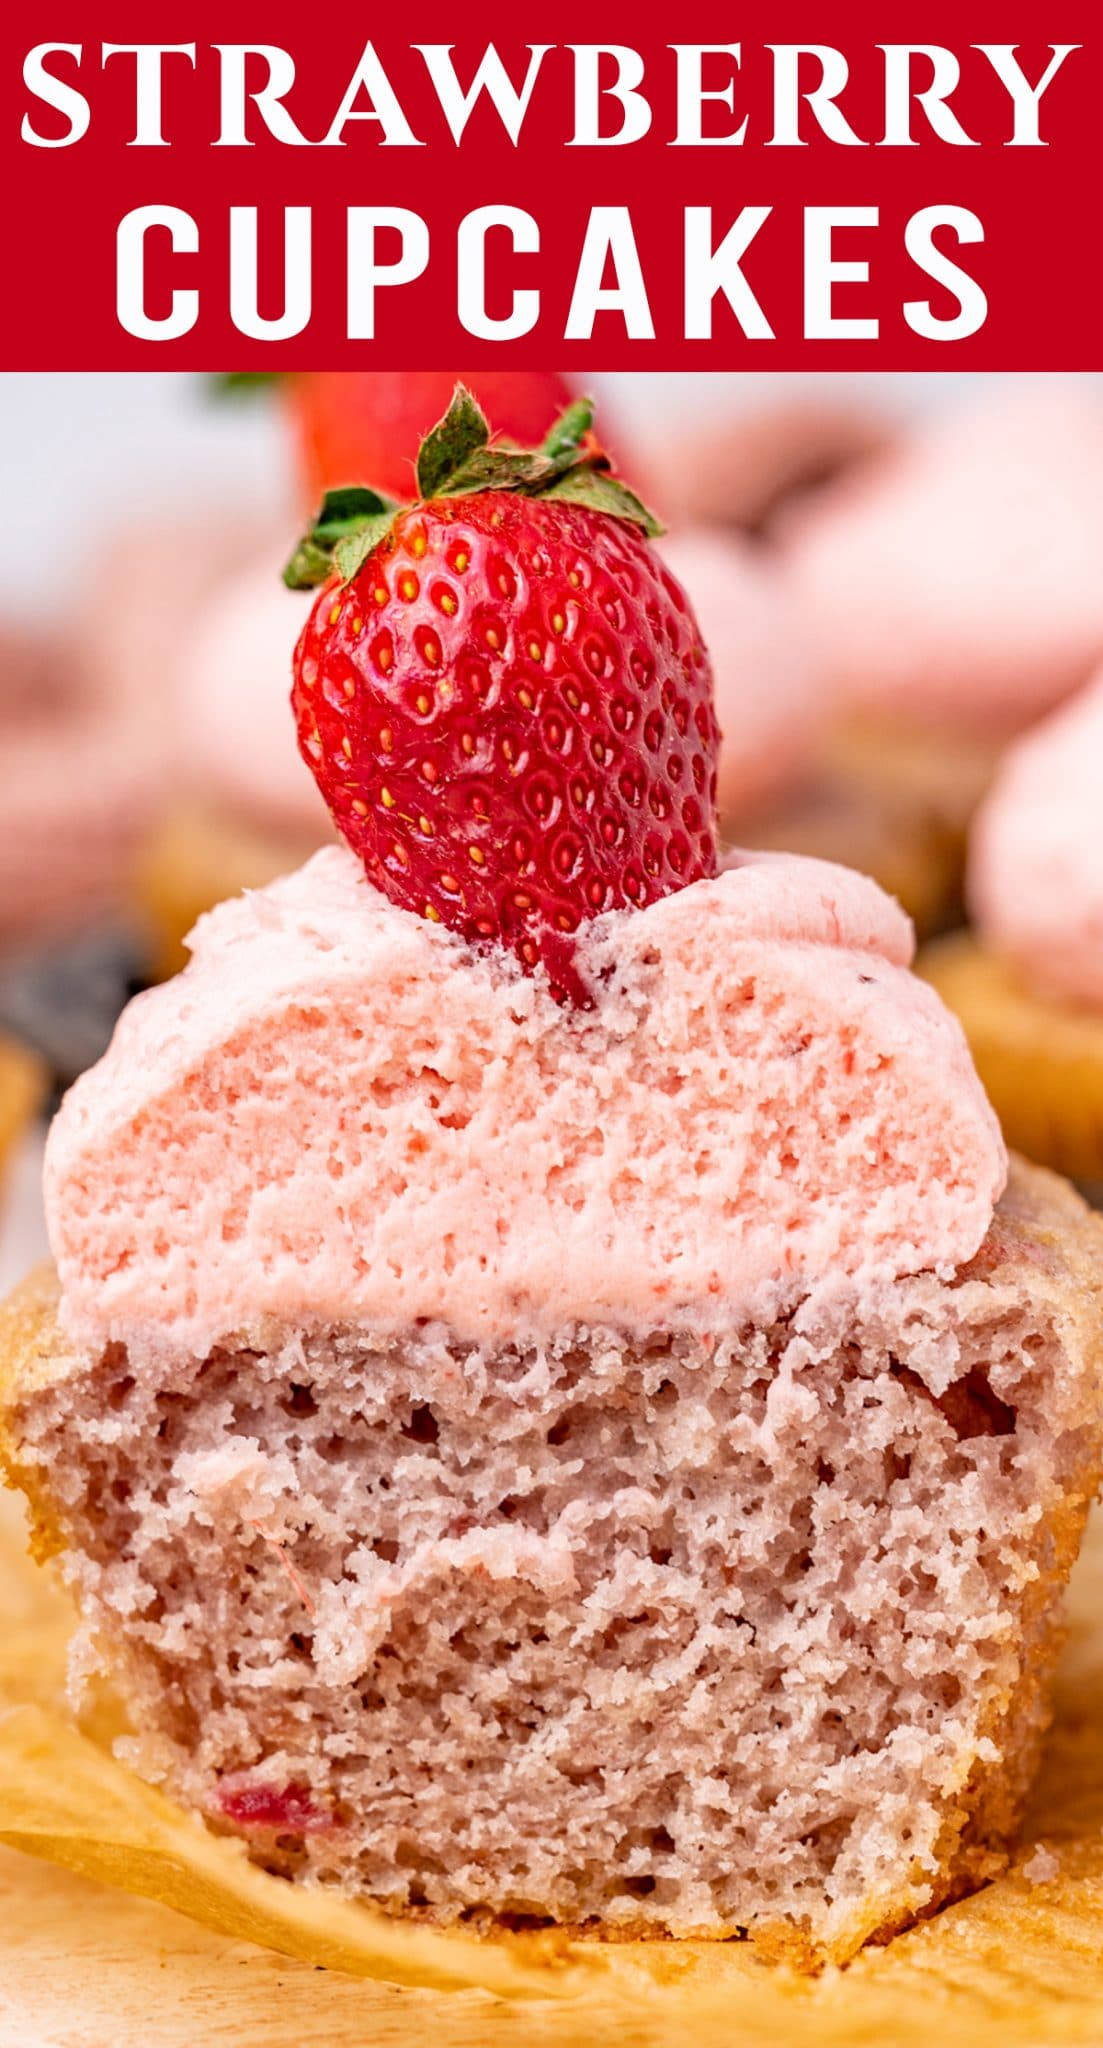 100% homemade strawberry cupcakes with intense flavor thanks to a reduced strawberry puree. These are soft, tender and fresh. via @thebestcakerecipes